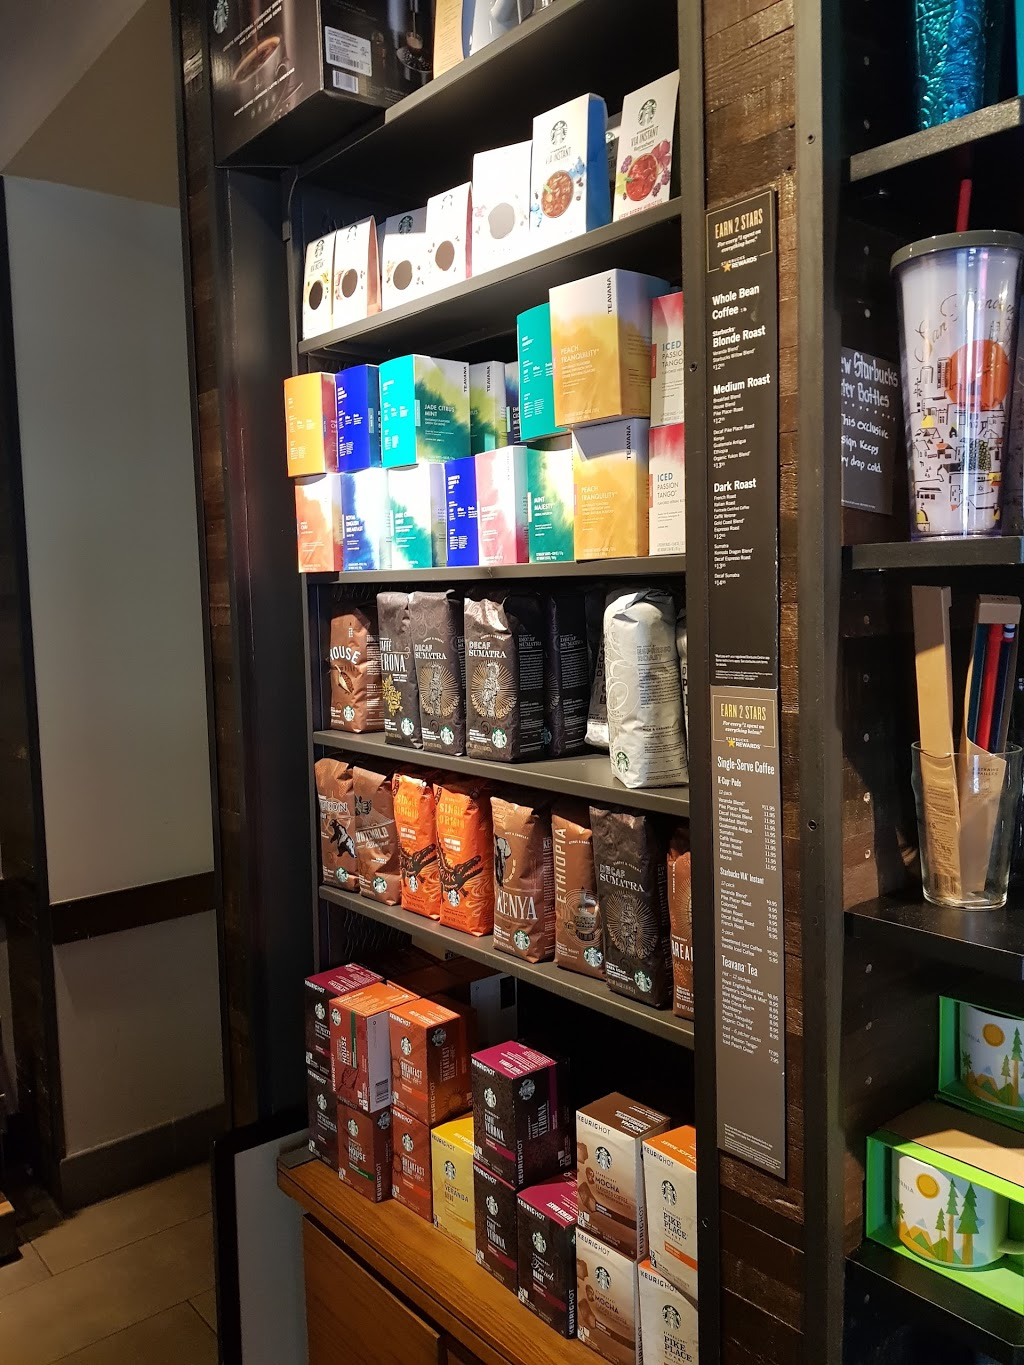 Starbucks | cafe | 79 Stanford Shopping Center, Palo Alto, CA 94304, USA | 6503300754 OR +1 650-330-0754